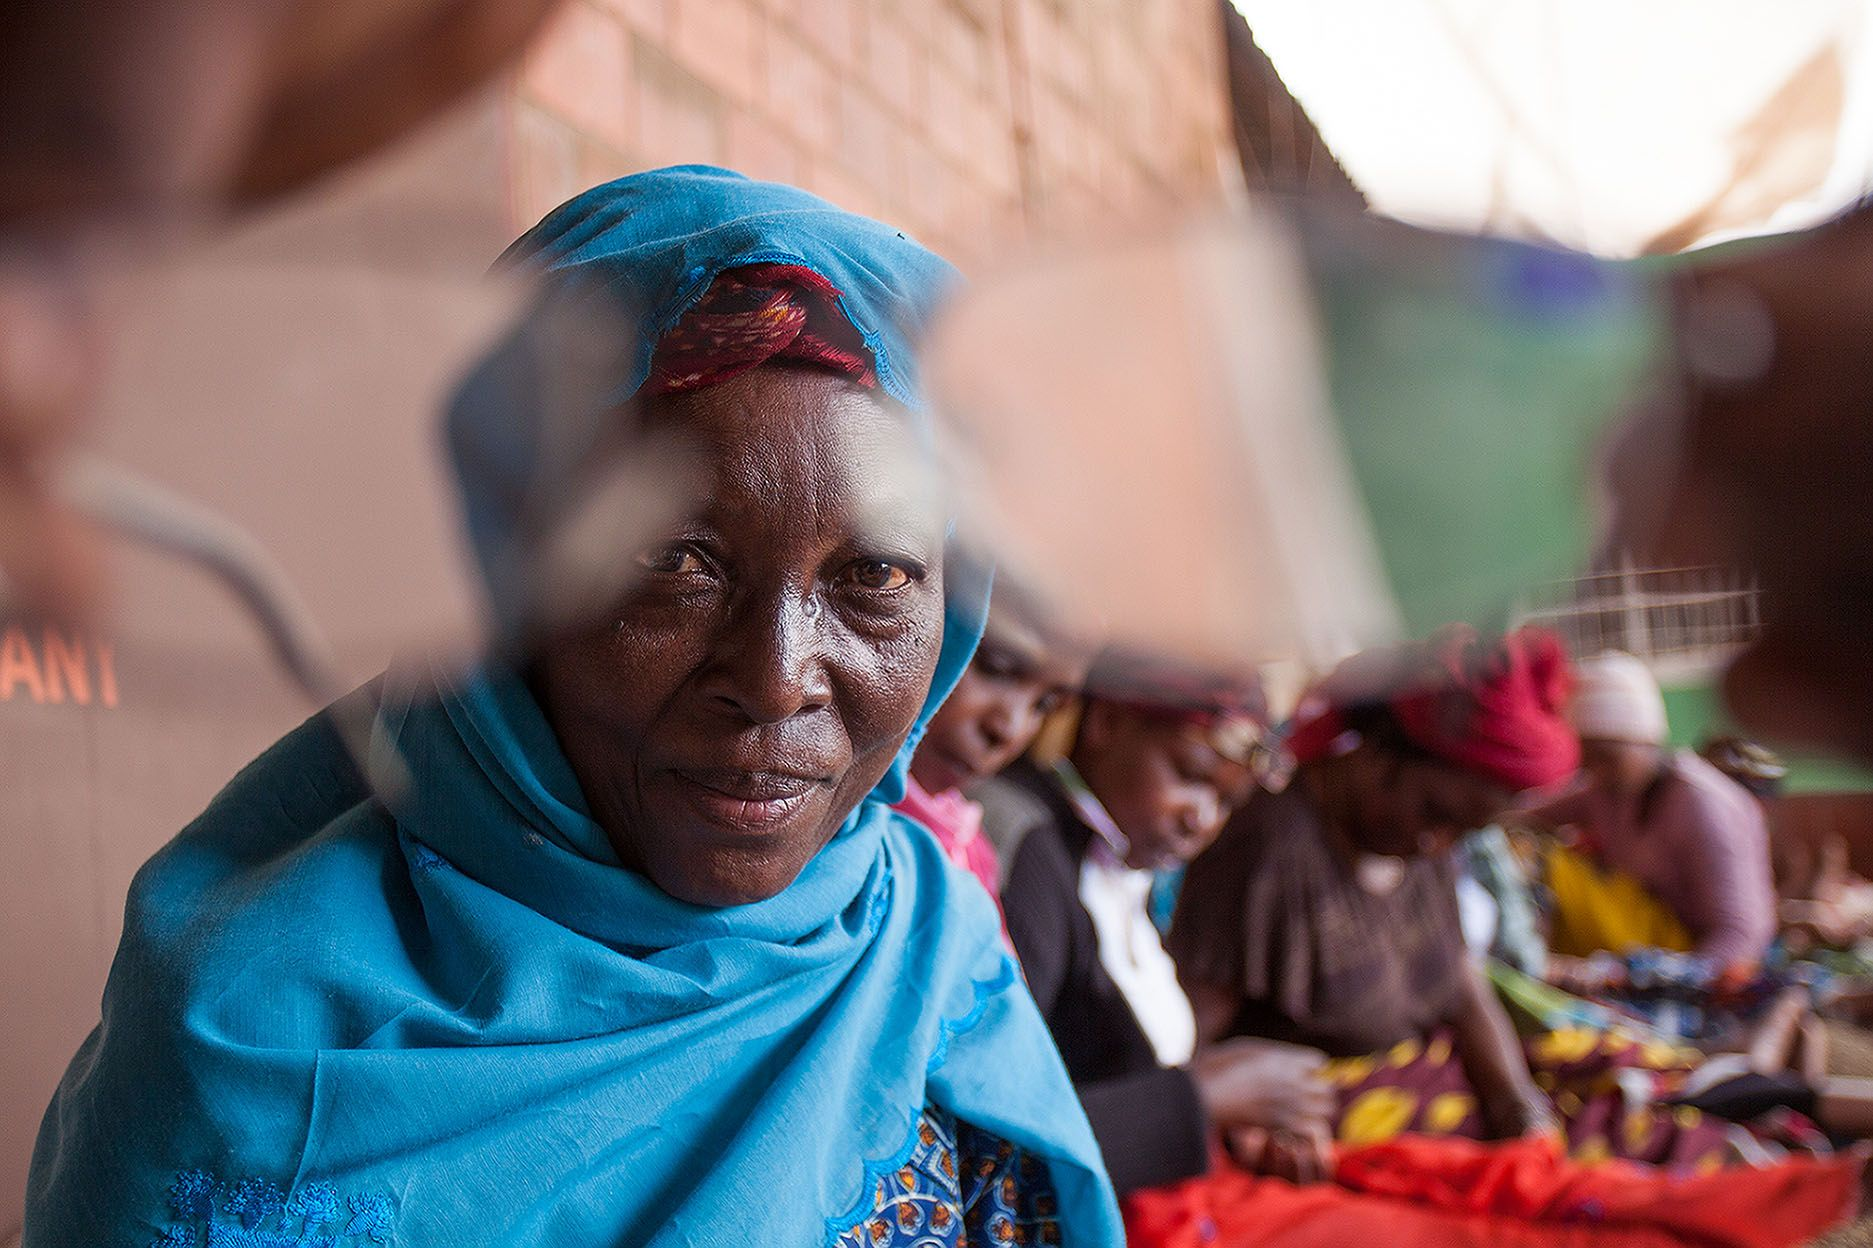 Woman with poor eyesight